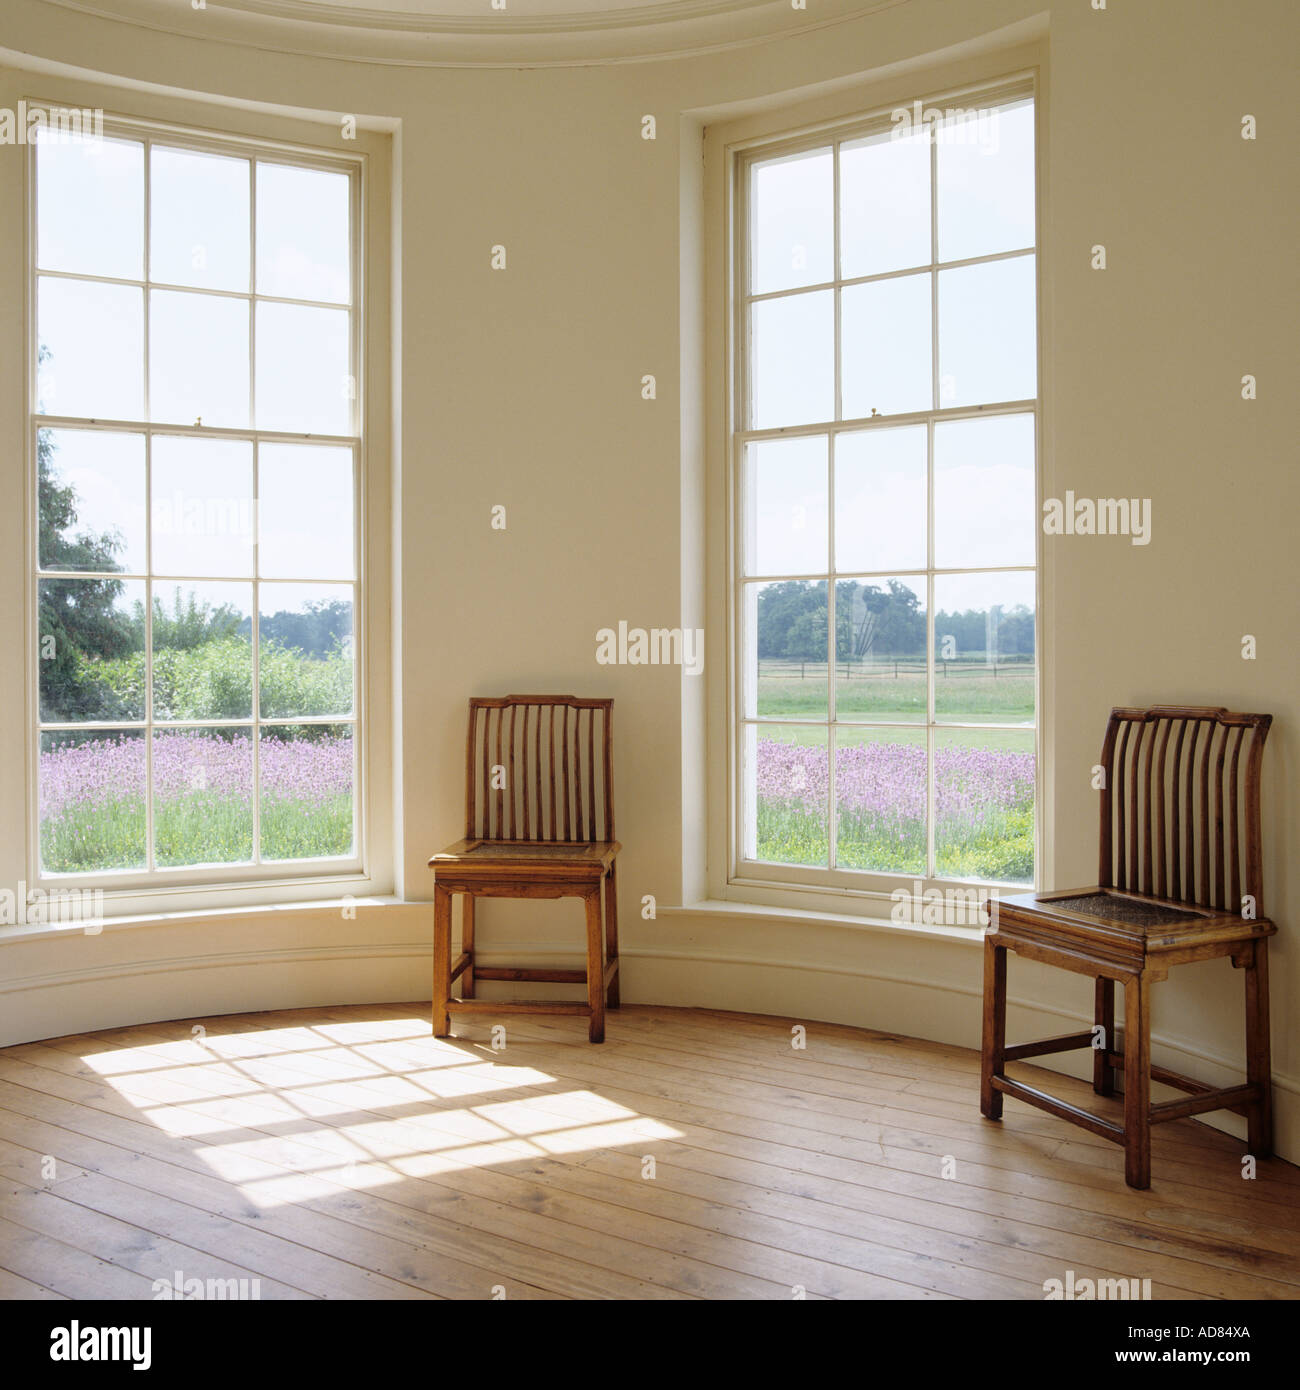 Empty Room: View Of Lavender Fields From An Empty Room With Panelled